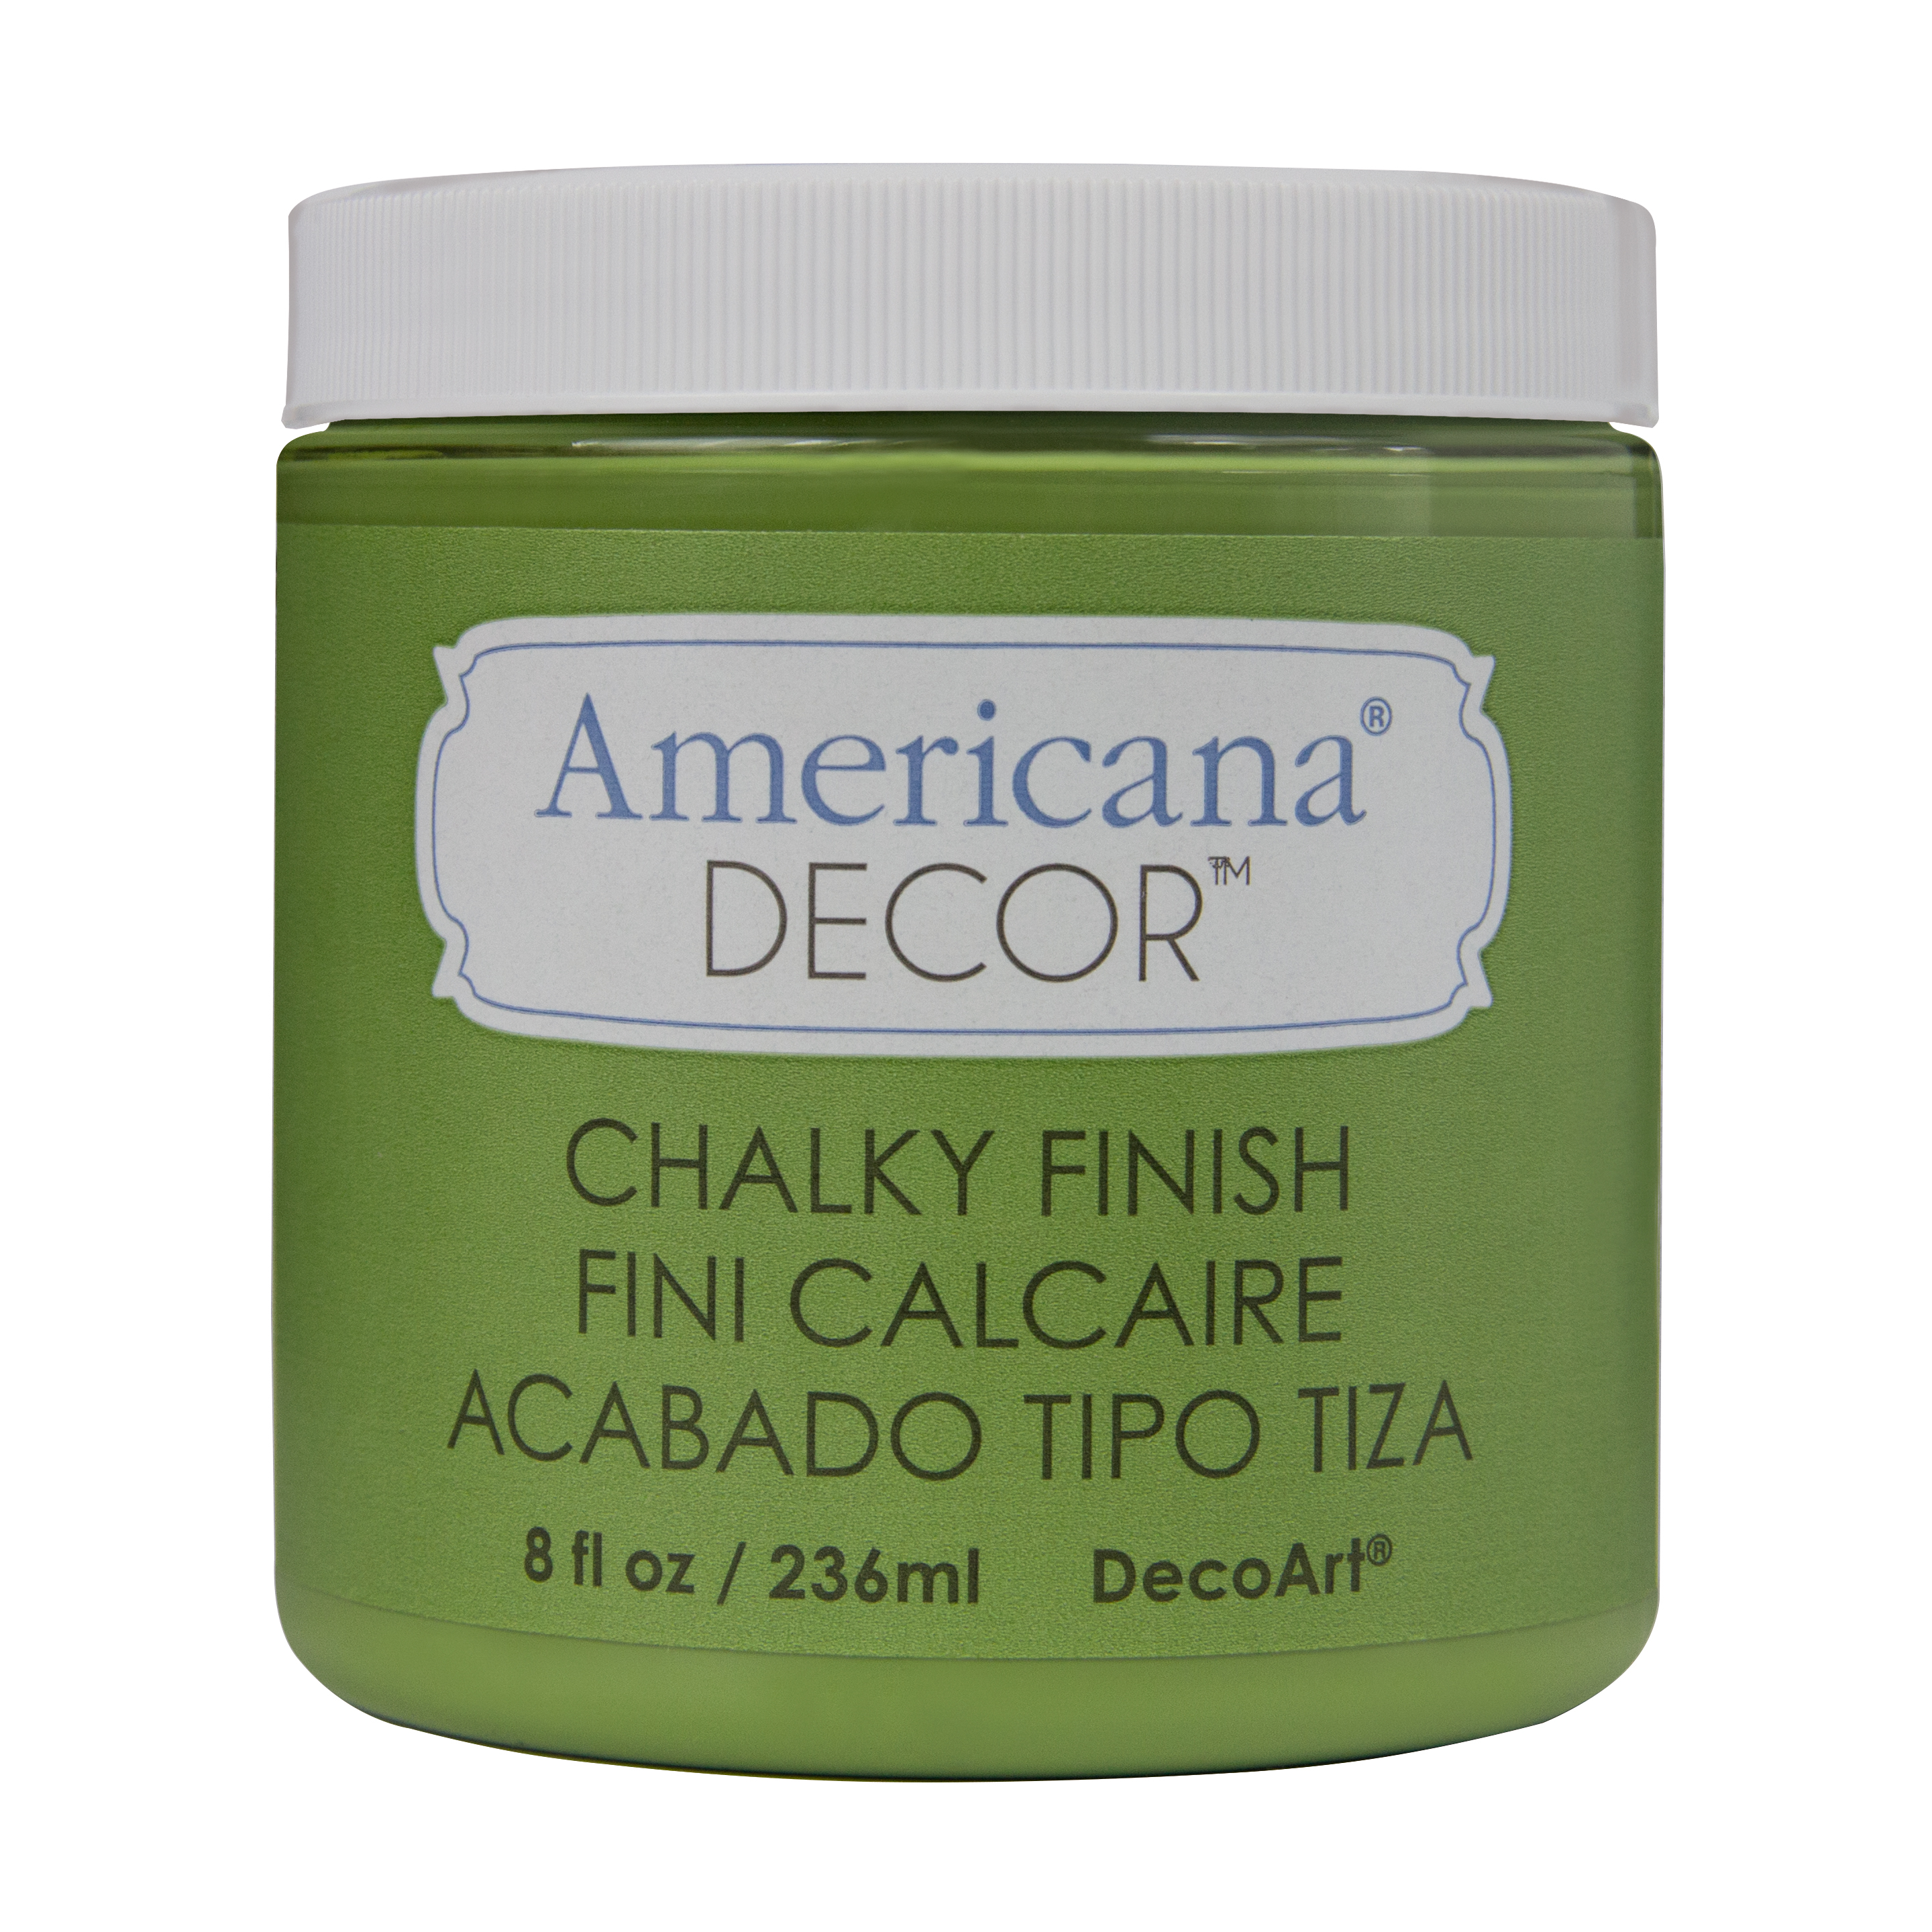 NEW LIFE CHALKY FINISH 236ml AMERICANA DECOR